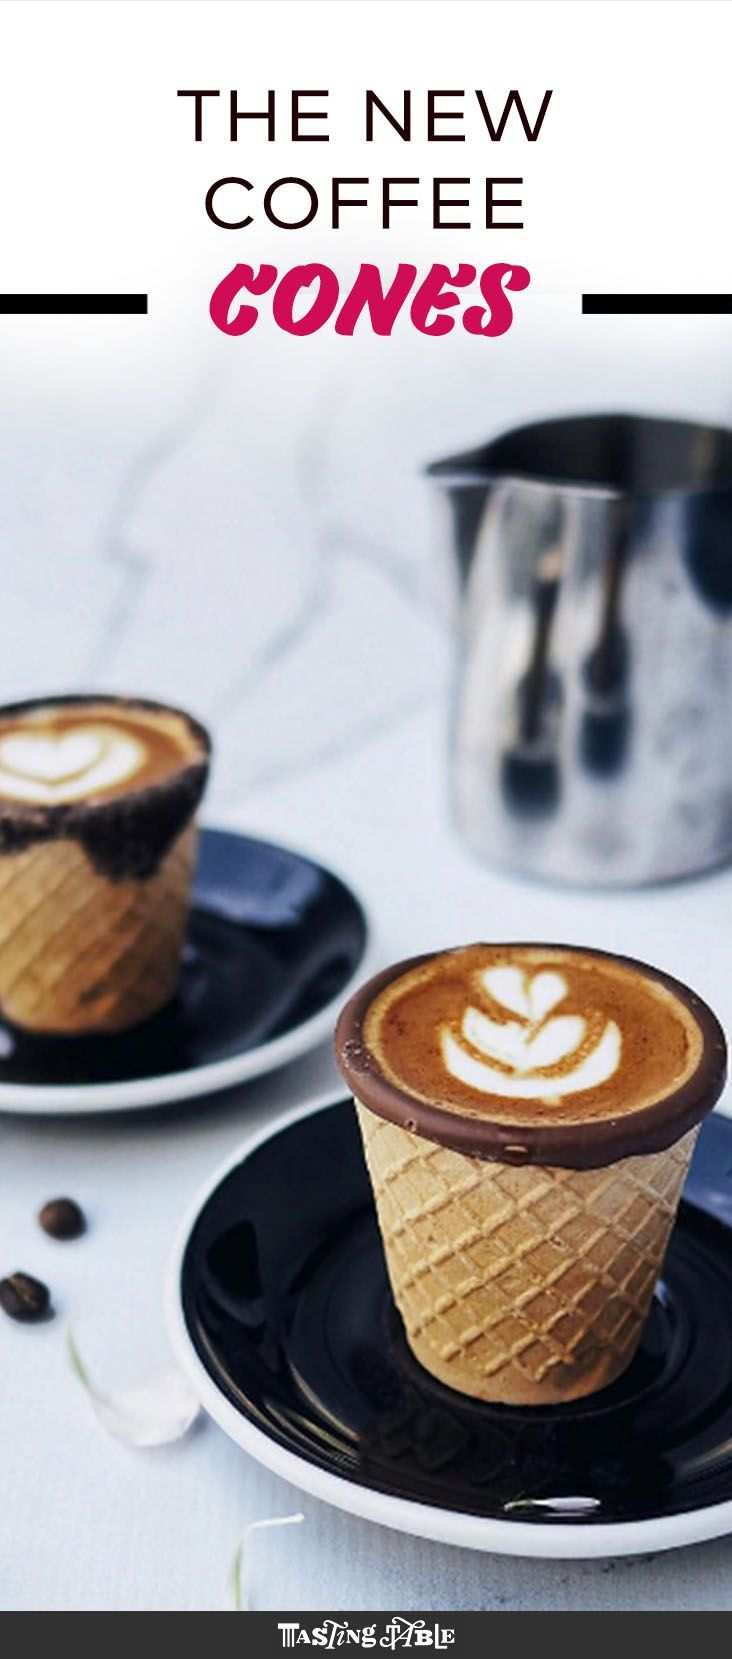 Why wouldn't you want to sip coffee from a waffle cone?